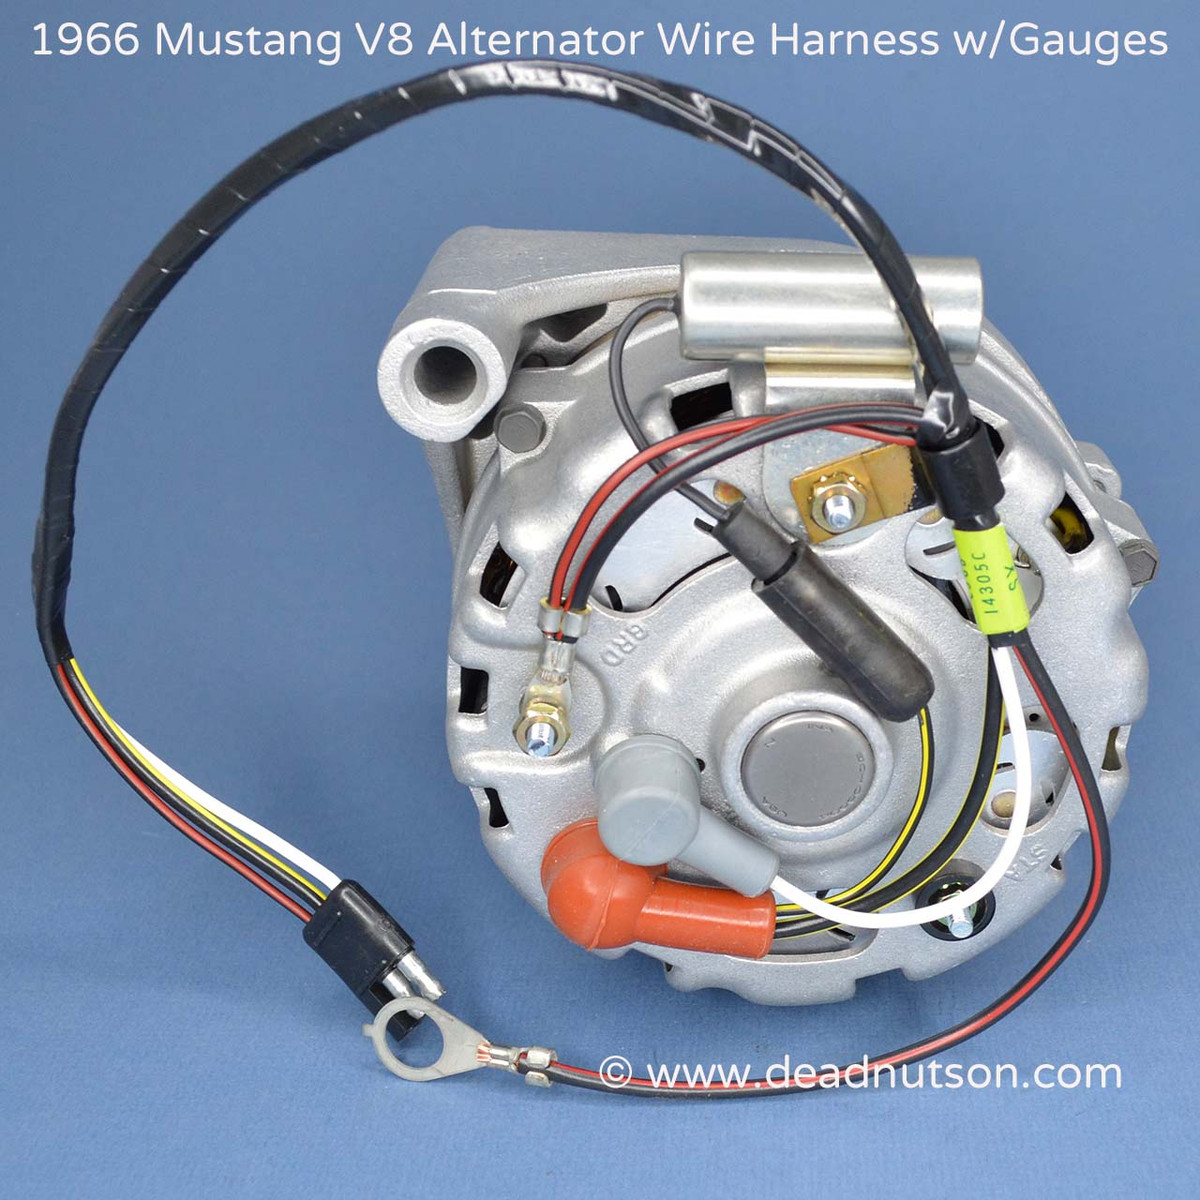 small resolution of 1964 1965 mustang alternator wire harness tag 289 w instrument gauges